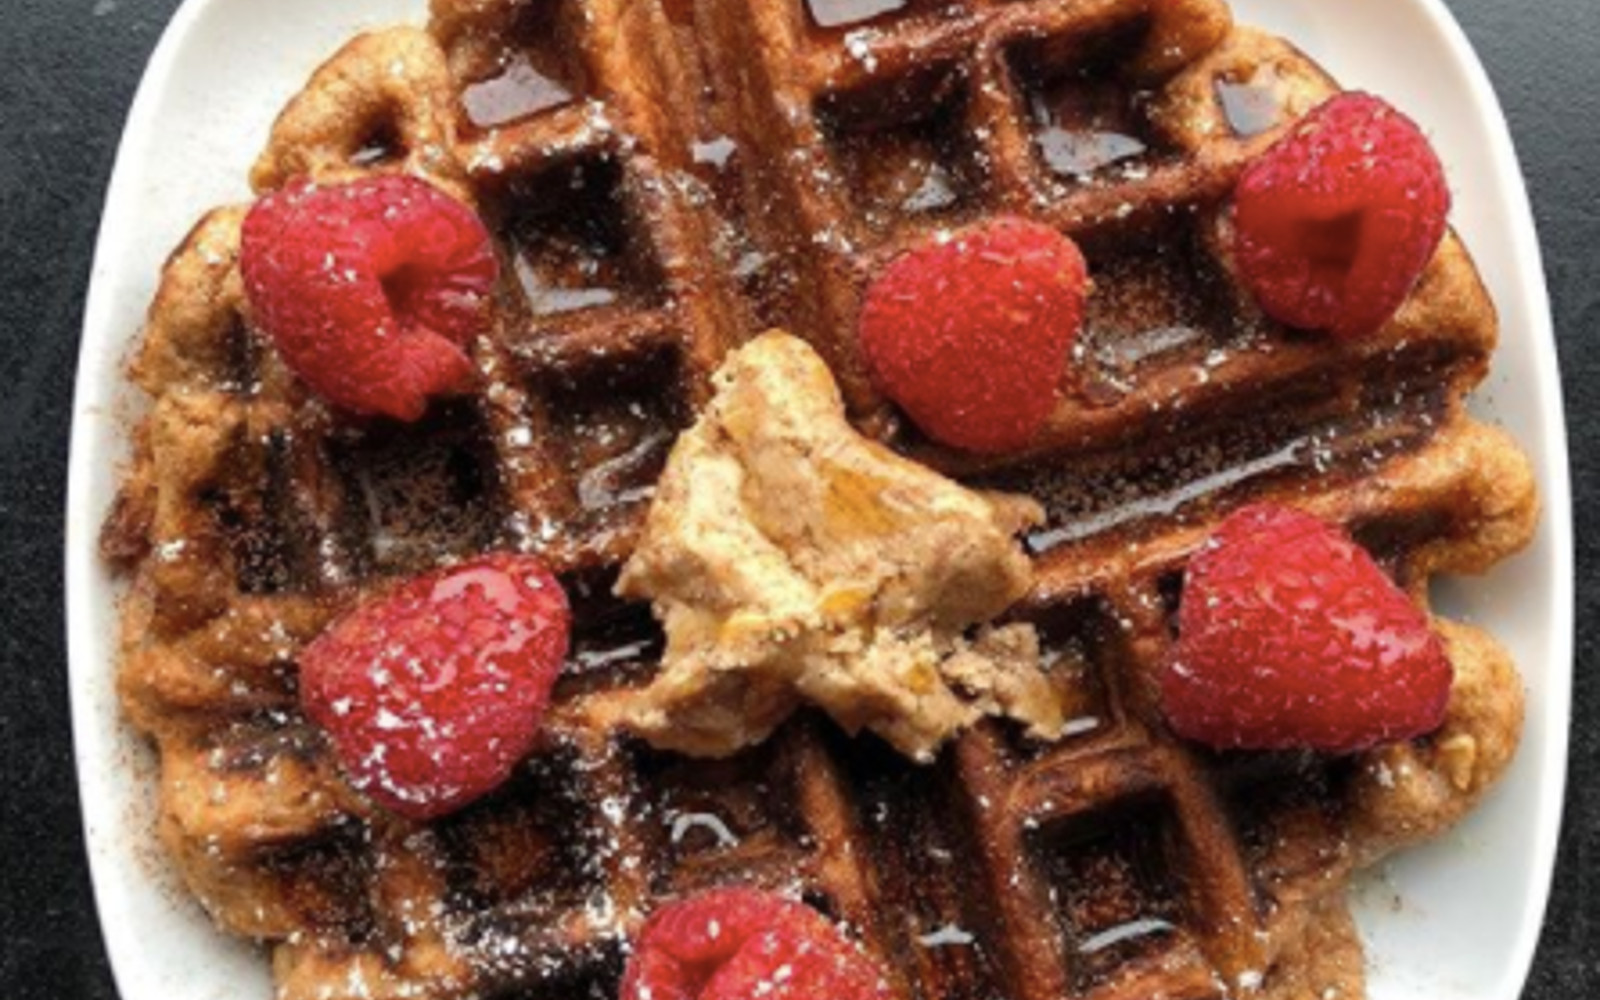 Vegan waffles with raspberries, maple syrup